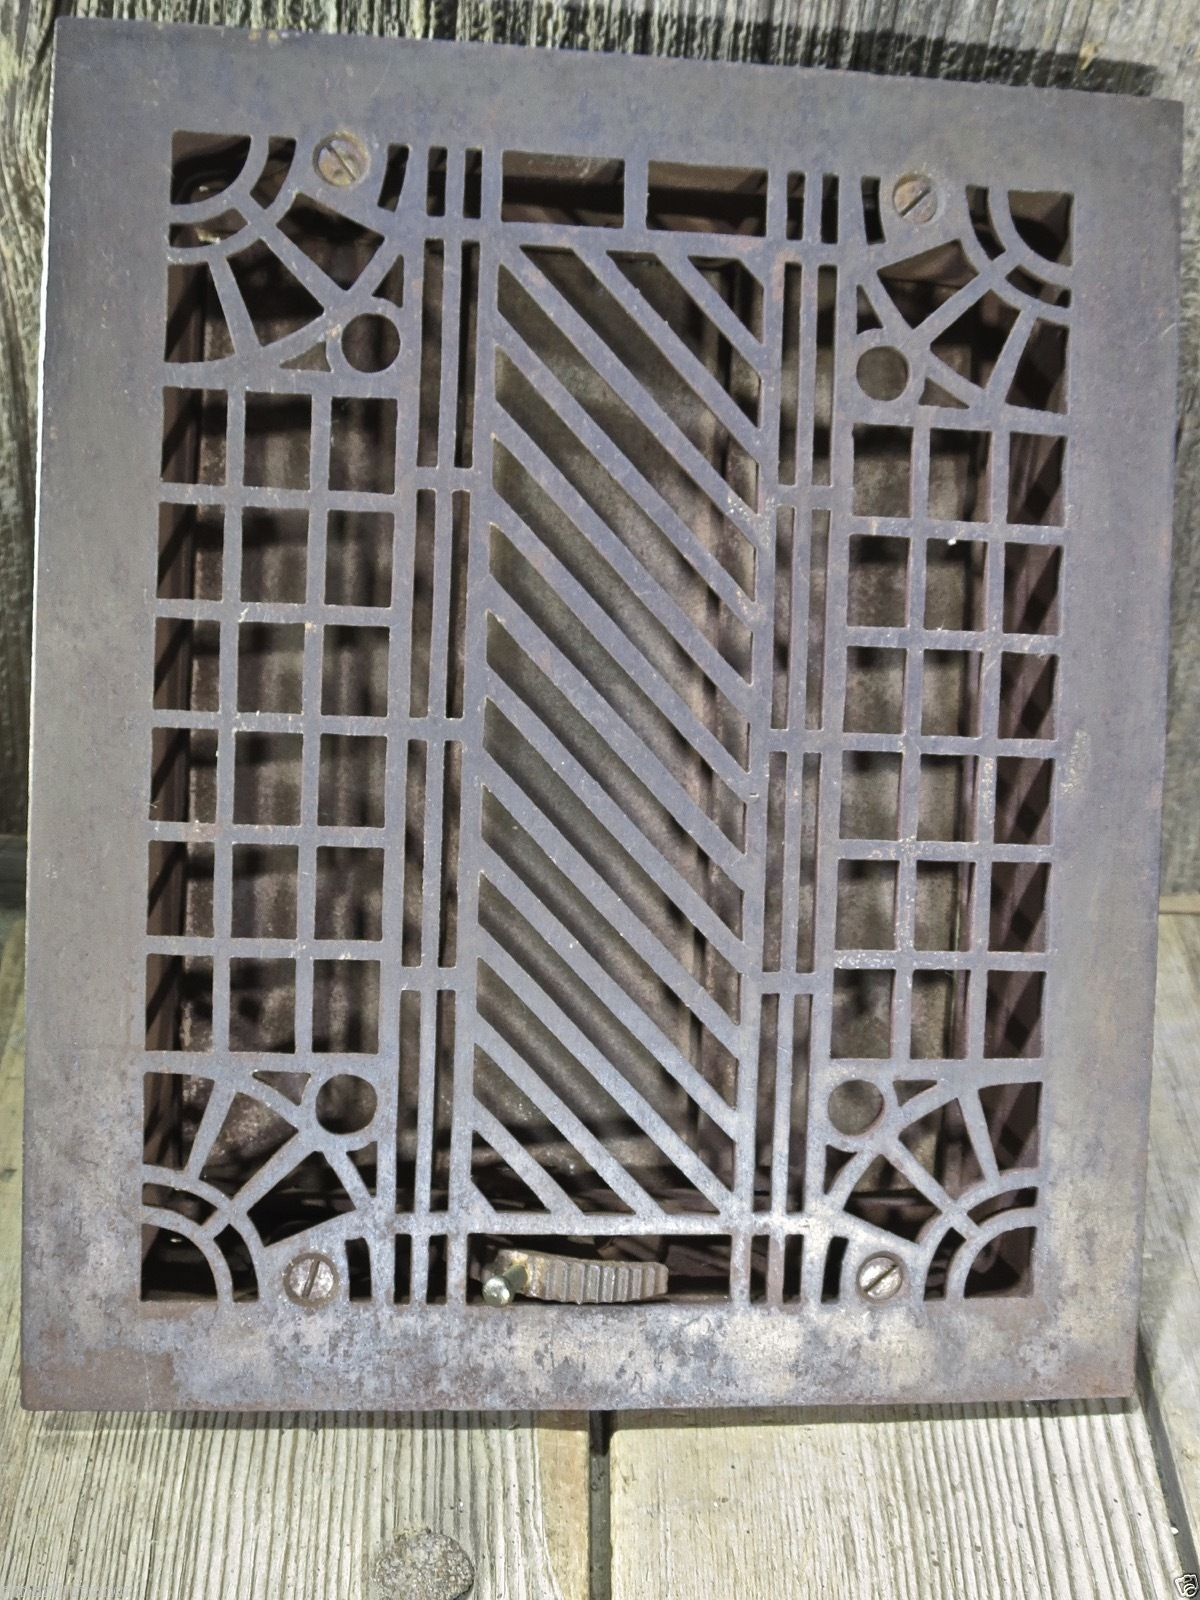 Heat Register Air Grate Louves Old 11 1 2 X 9 5 8 Slant Cast Iron Vintage Clean Antique Hardware Architectural Salvage Antiques